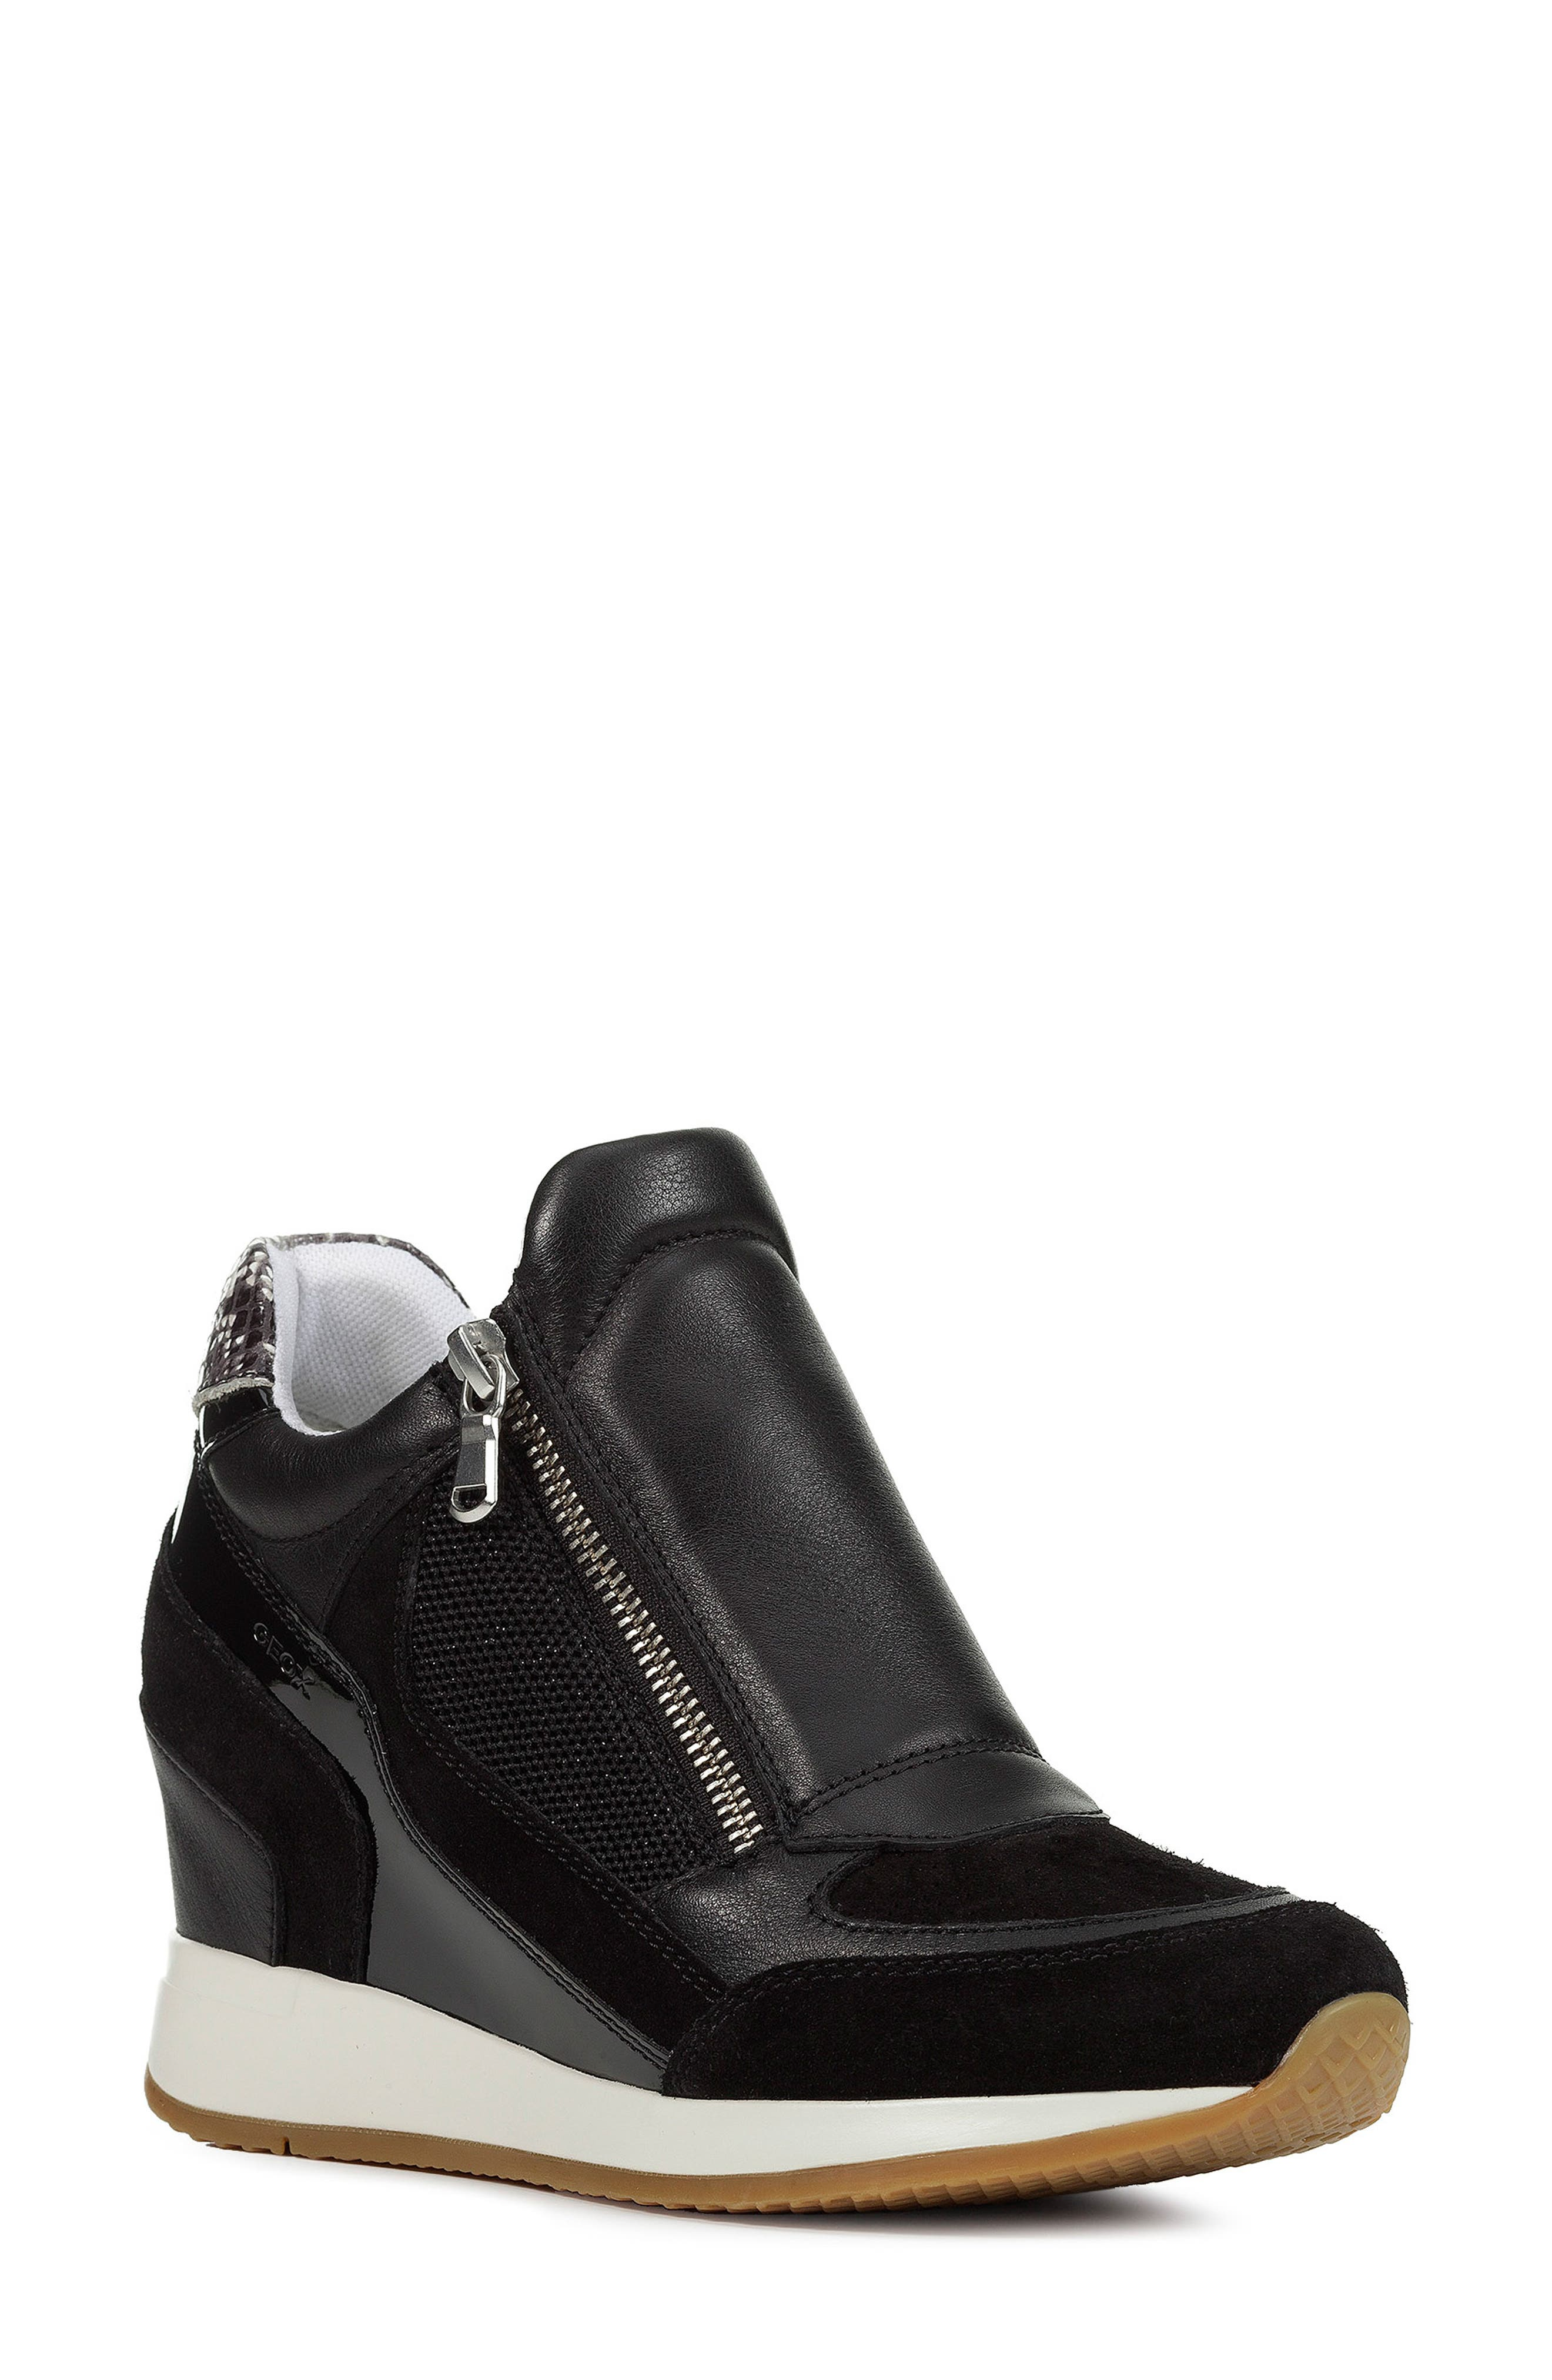 Nydame Wedge Sneaker,                         Main,                         color, BLACK/ BLACK LEATHER